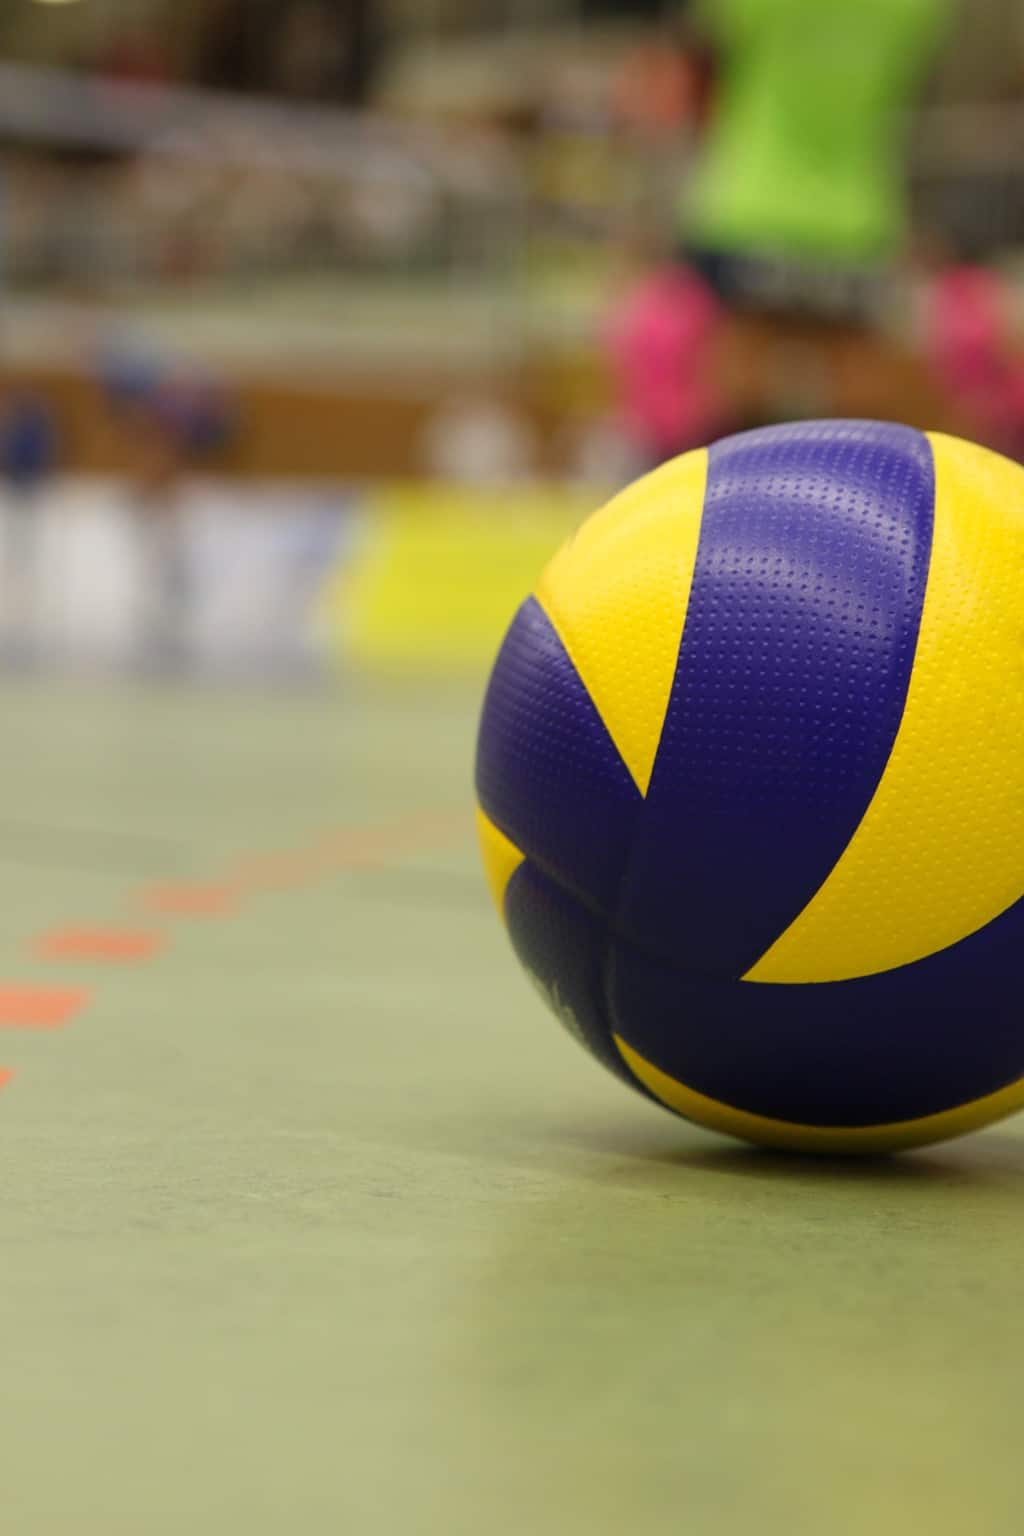 A close up shot of a volleyball